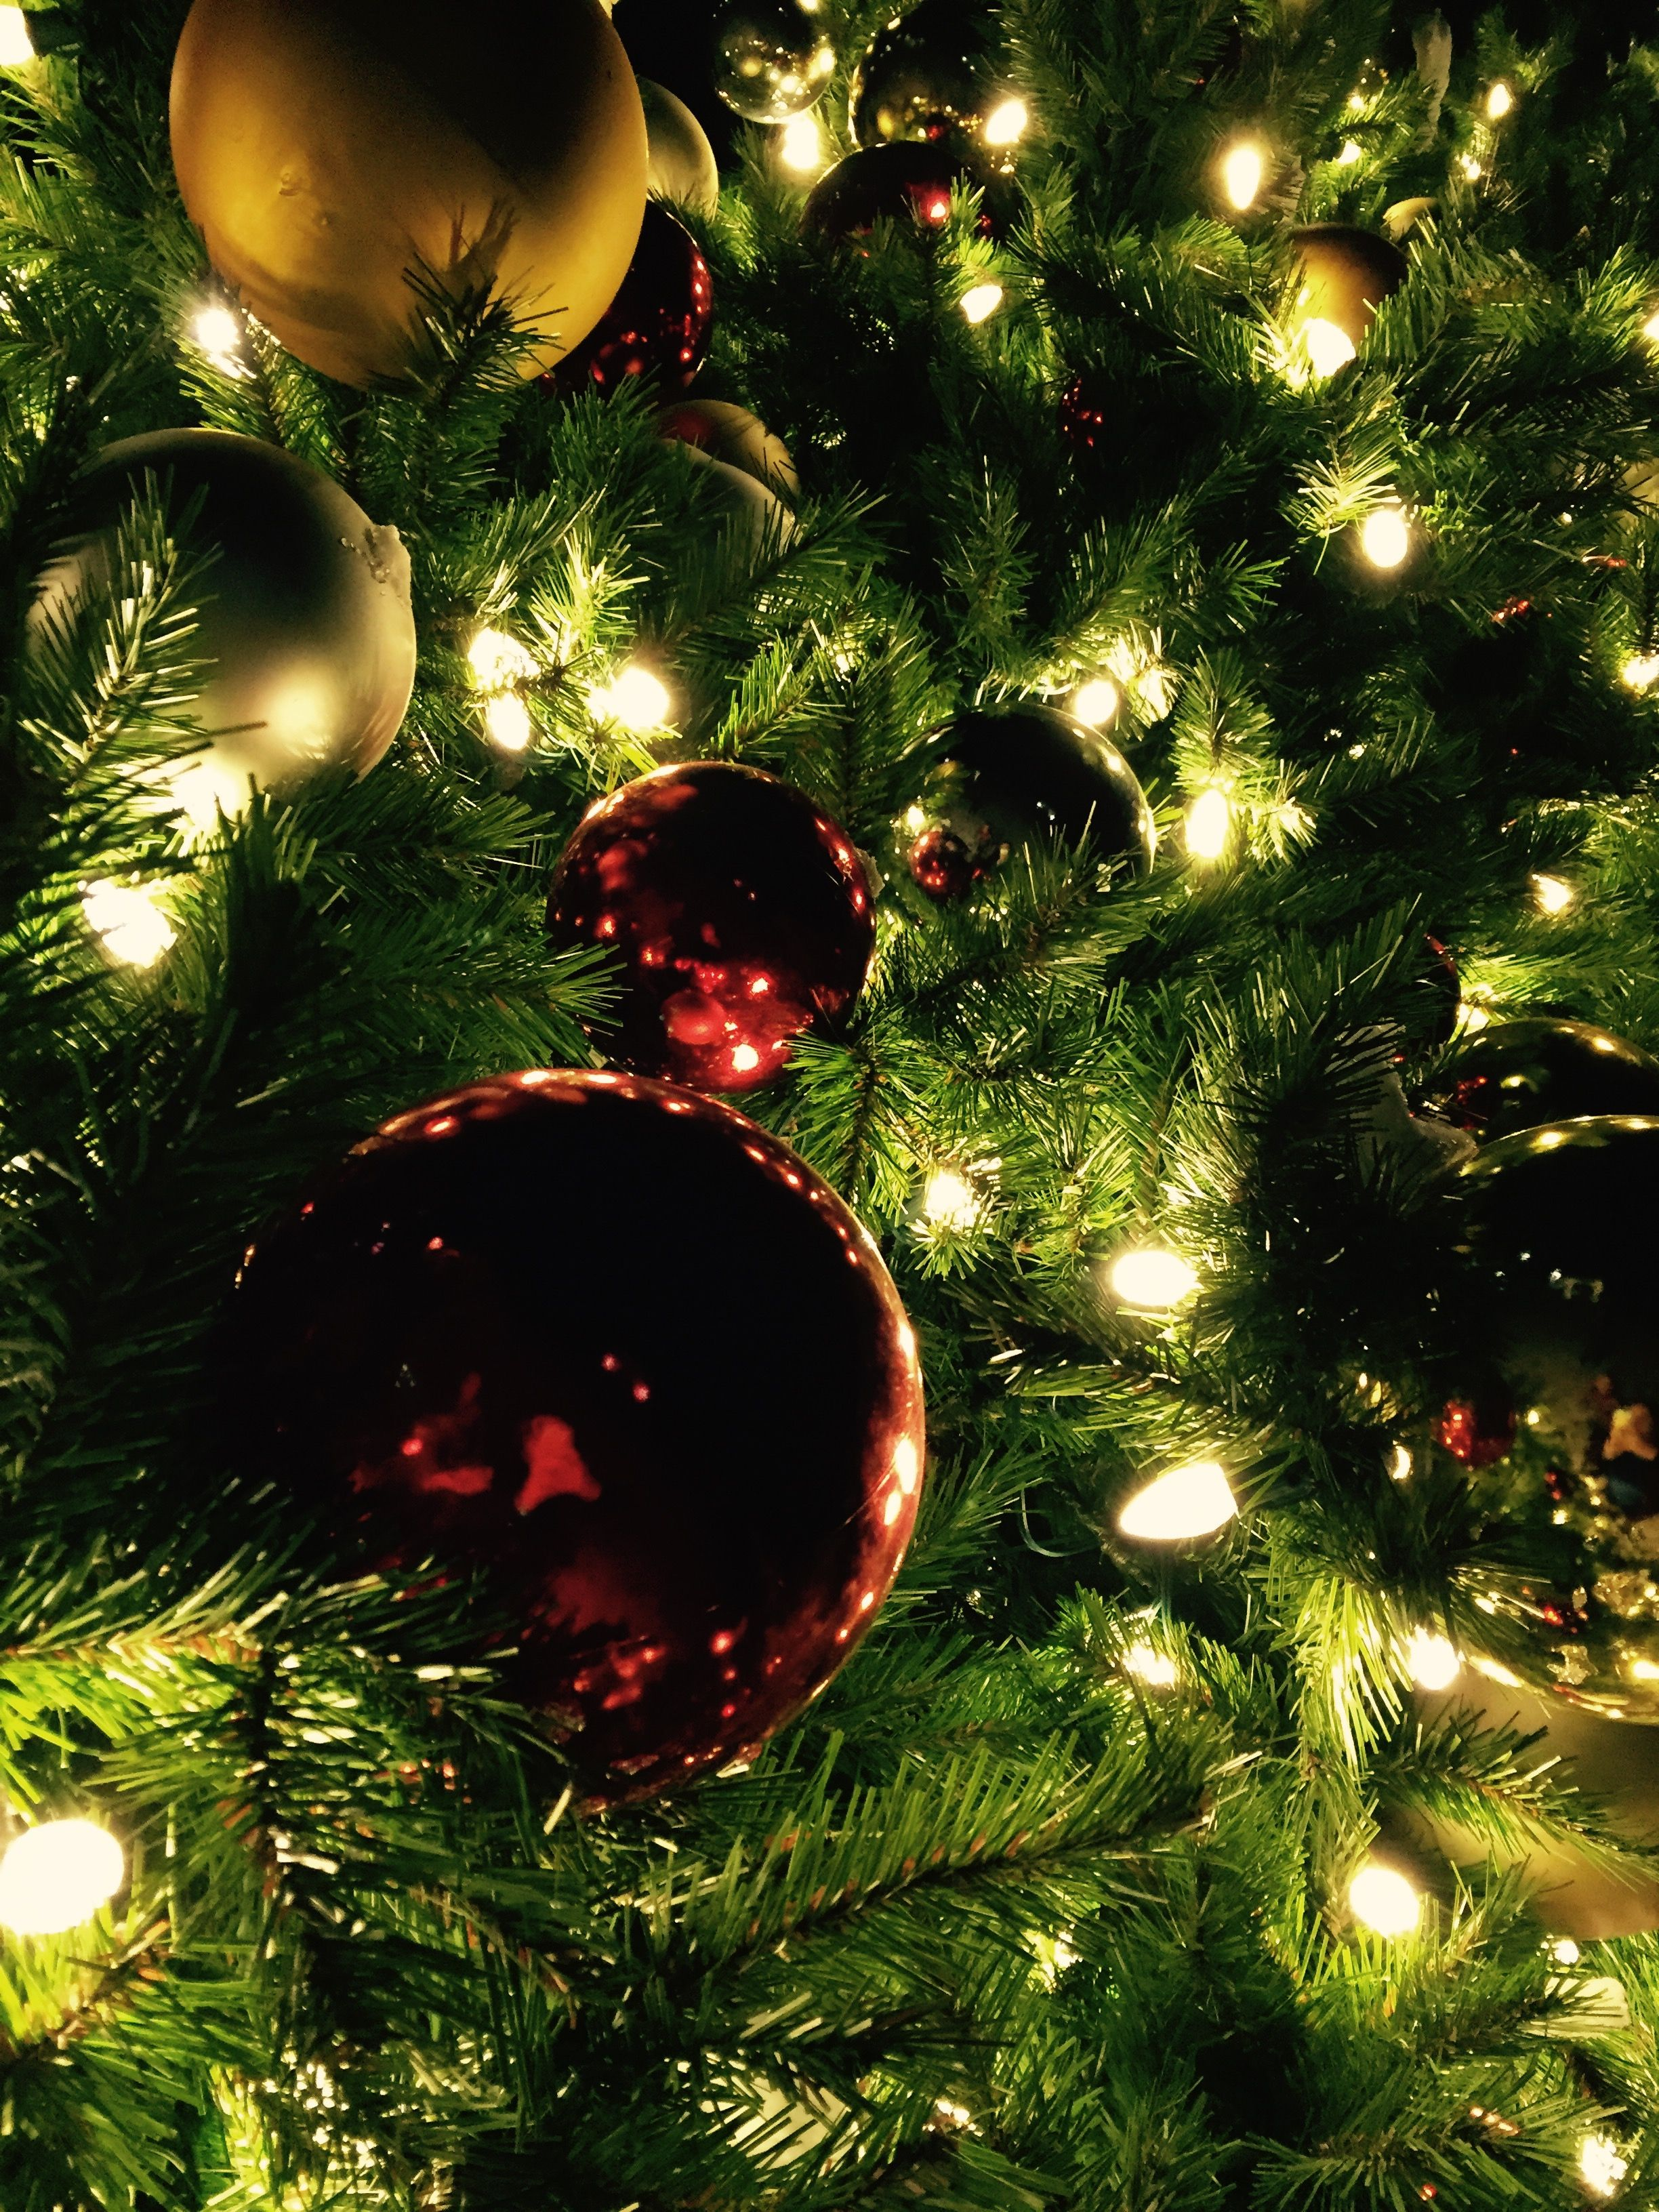 Christmas Iphone Wallpaper Tree Photography Wallpaper Christmas Tree Pictures Christmas Tree Photography